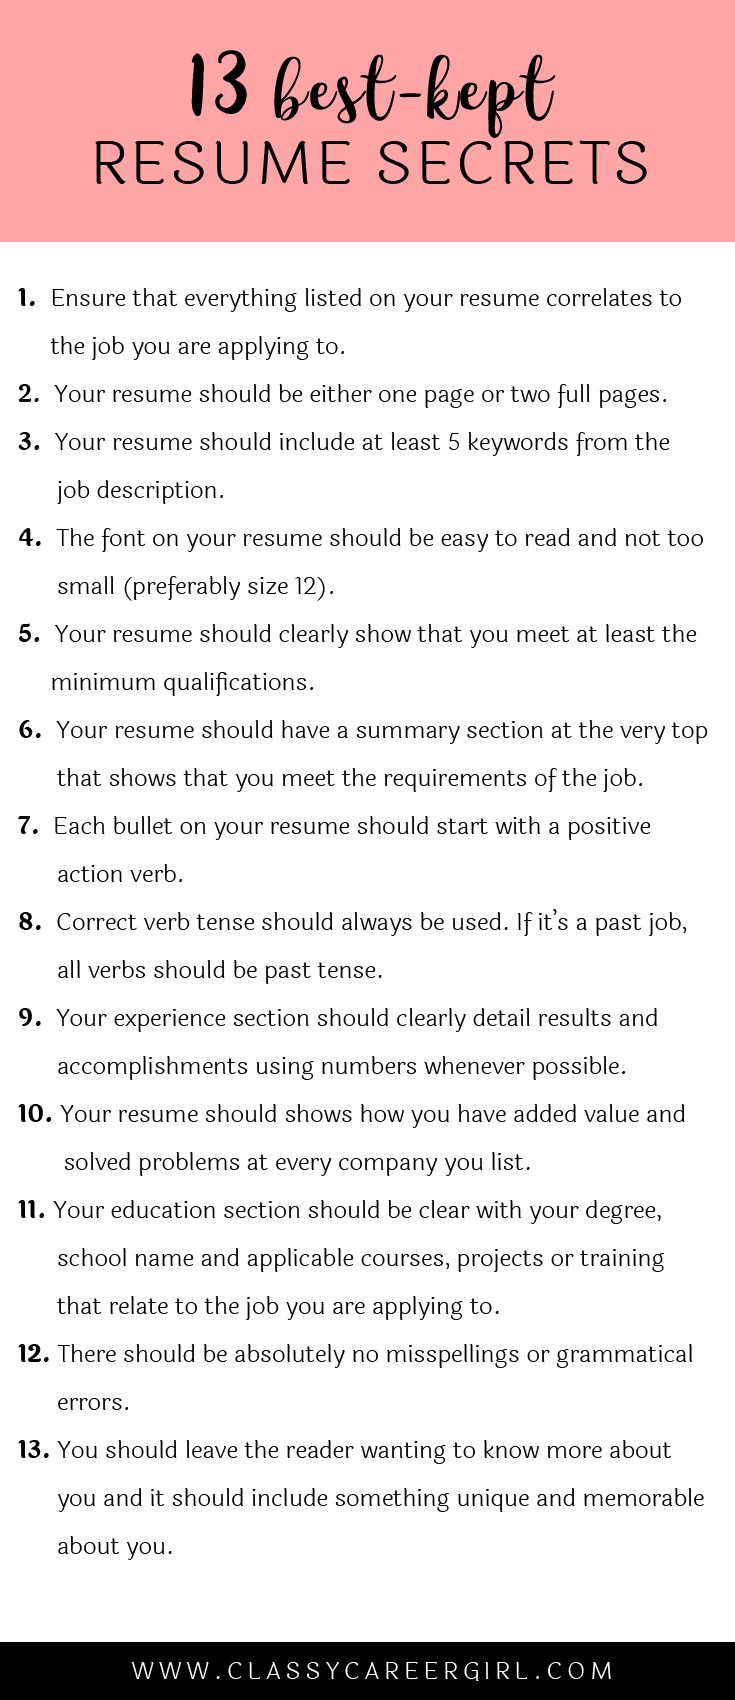 Opposenewapstandardsus  Marvellous  Ideas About Resume On Pinterest  Cv Format Resume Cv And  With Fascinating Some Hiring Managers Will Toss Your Resume Out If You Dont Know These  With Astonishing Best It Resume Also Coaching Resumes In Addition Free Resume Template For Mac And What To Name Resume File As Well As Ophthalmic Technician Resume Additionally Photographer Resume Template From Pinterestcom With Opposenewapstandardsus  Fascinating  Ideas About Resume On Pinterest  Cv Format Resume Cv And  With Astonishing Some Hiring Managers Will Toss Your Resume Out If You Dont Know These  And Marvellous Best It Resume Also Coaching Resumes In Addition Free Resume Template For Mac From Pinterestcom